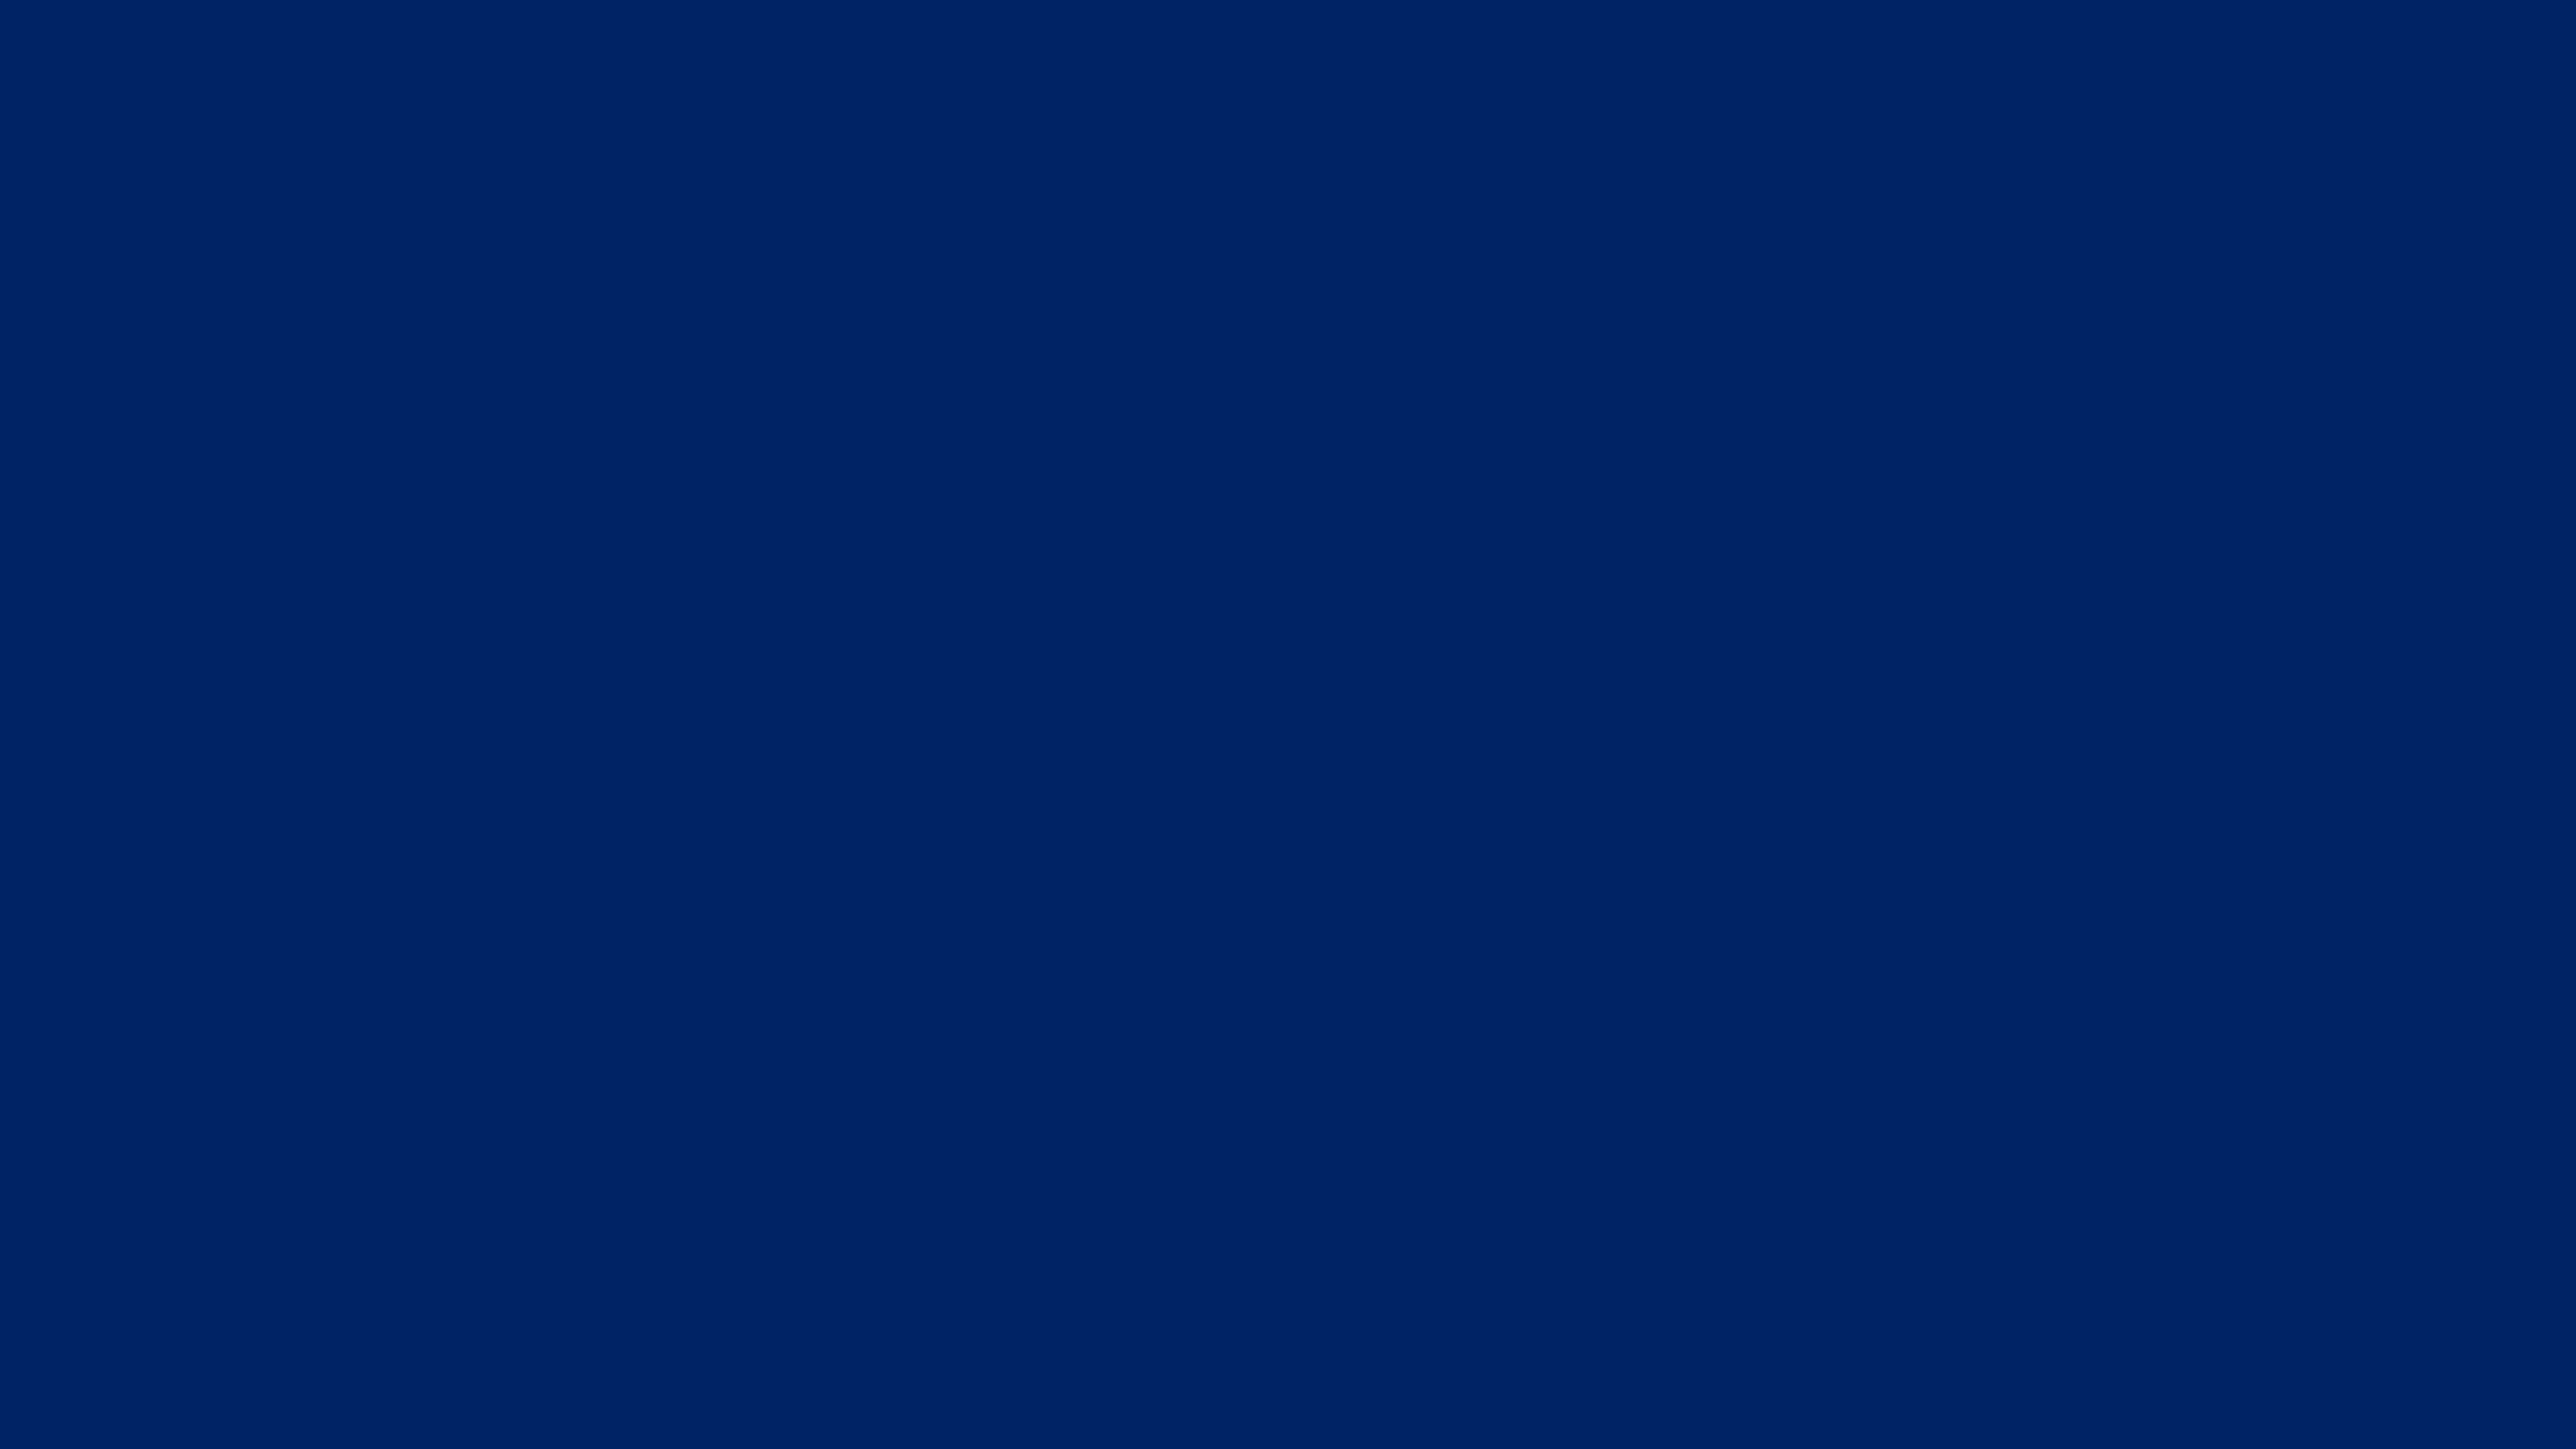 3840x2160 Royal Blue Traditional Solid Color Background